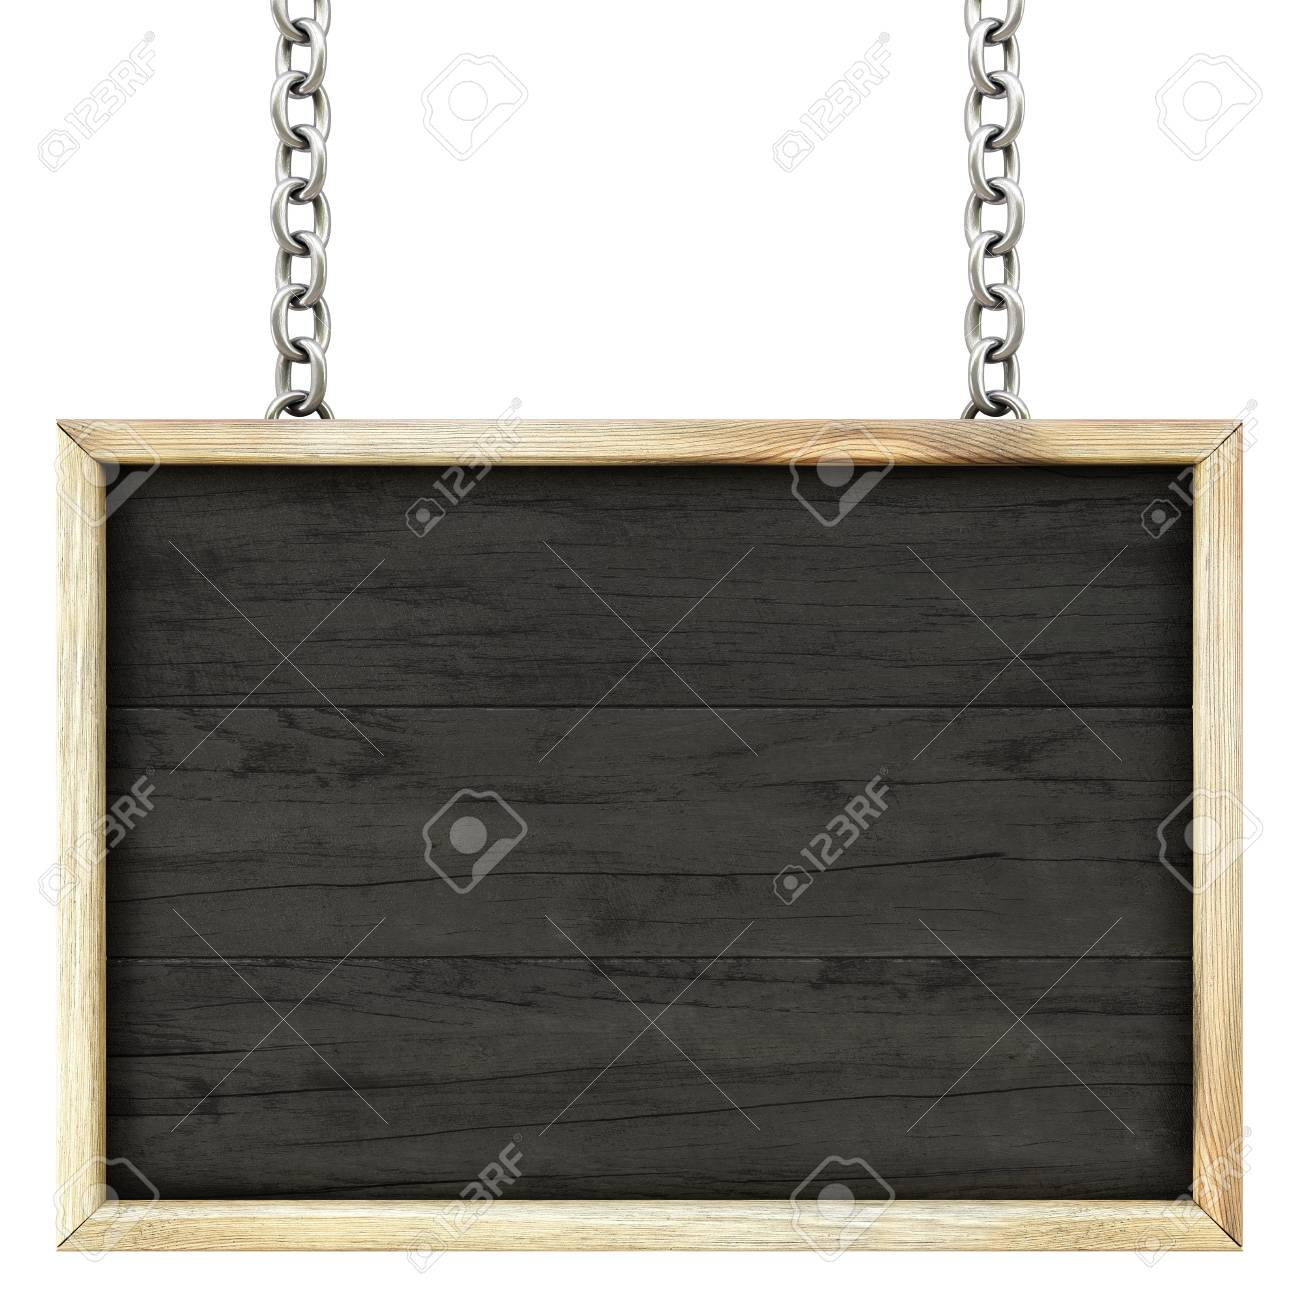 wooden signboard on the chains. Isolated on white. Stock Photo - 19080991